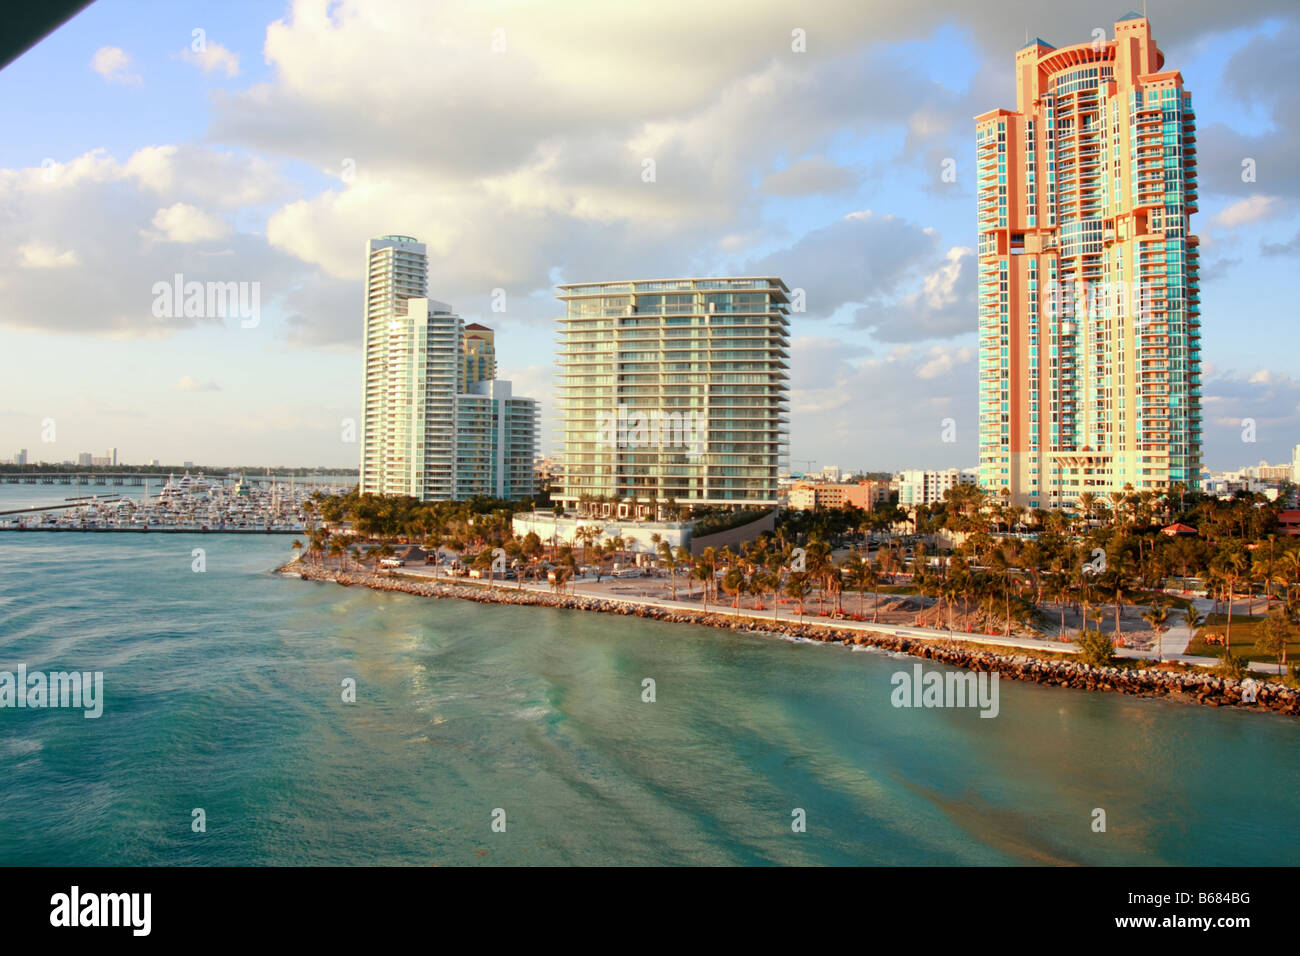 Several condos on Miami Beach. Shown are Portofino Tower, the Murano at Portofino, and Apogee South Beach. - Stock Image